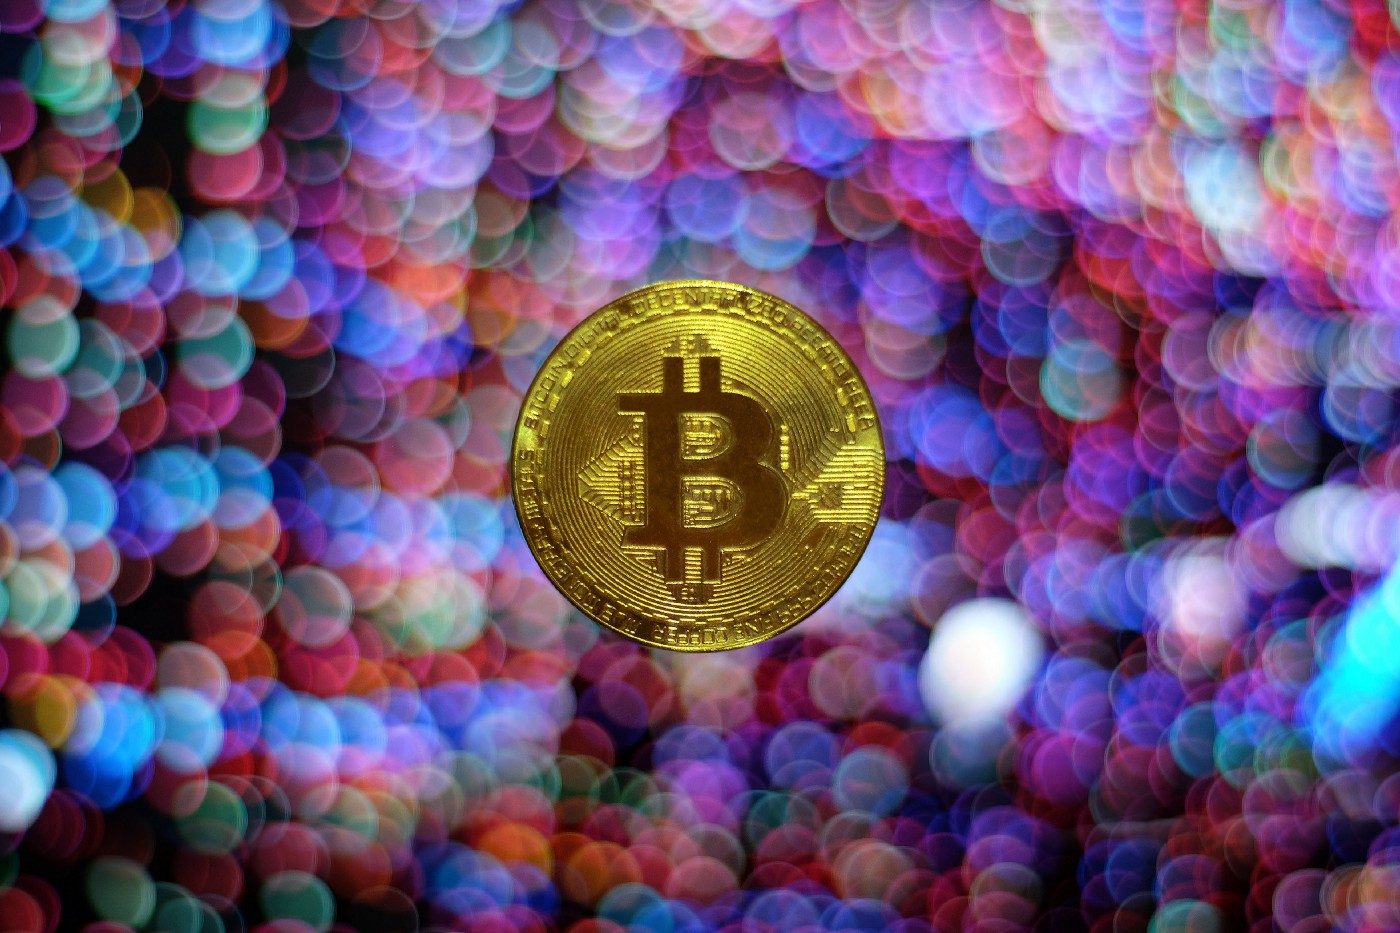 Bitcoin and cryptocurrency, Photo by Viktor Forgacs on Unsplash